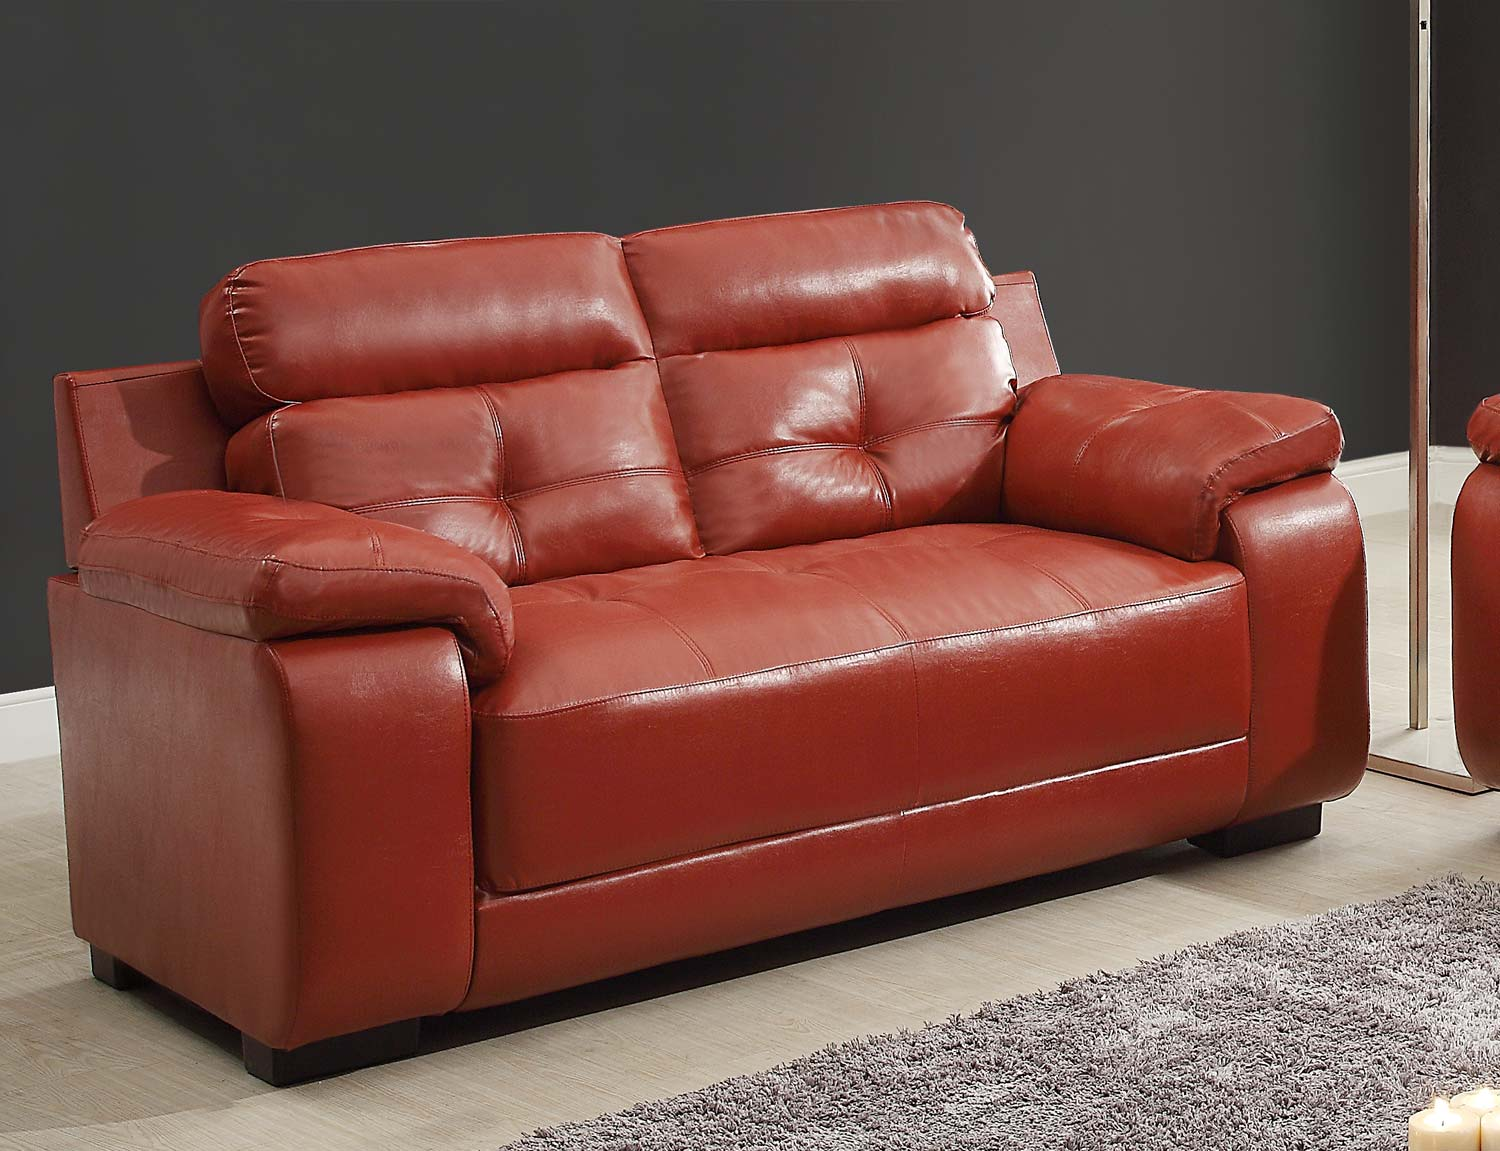 Homelegance Zane Love Seat - Red - All Bonded Leather